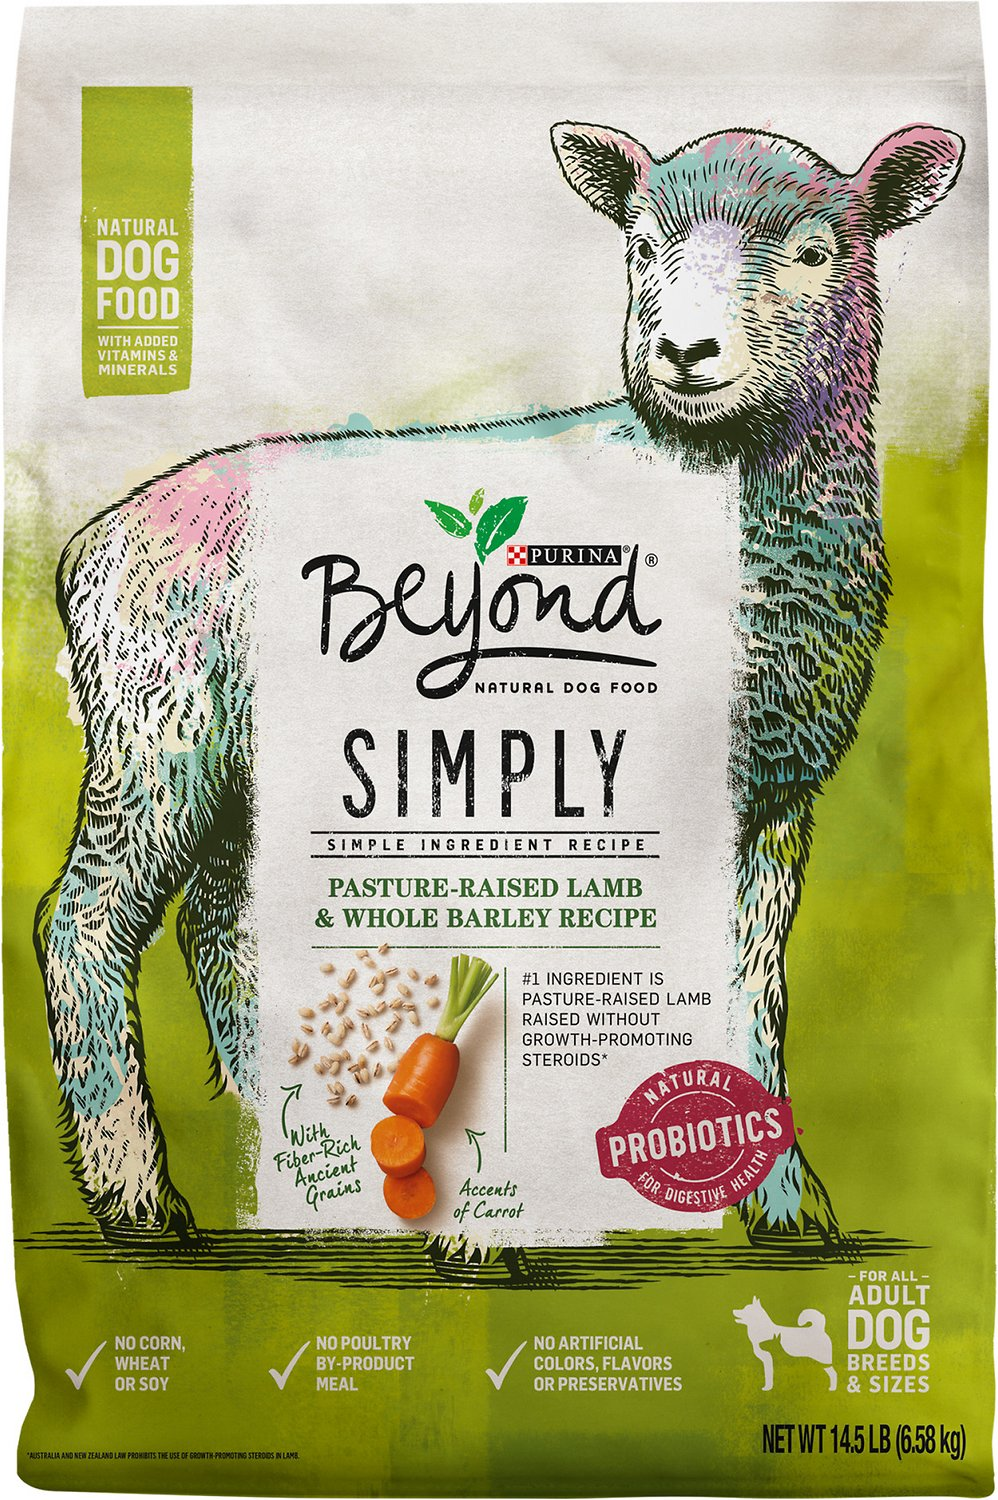 Purina Beyond Cat Food >> Purina Beyond Simply 9 Ranch Raised Lamb & Whole Barley Recipe Dry Dog Food, 14.5-lb bag - Chewy.com